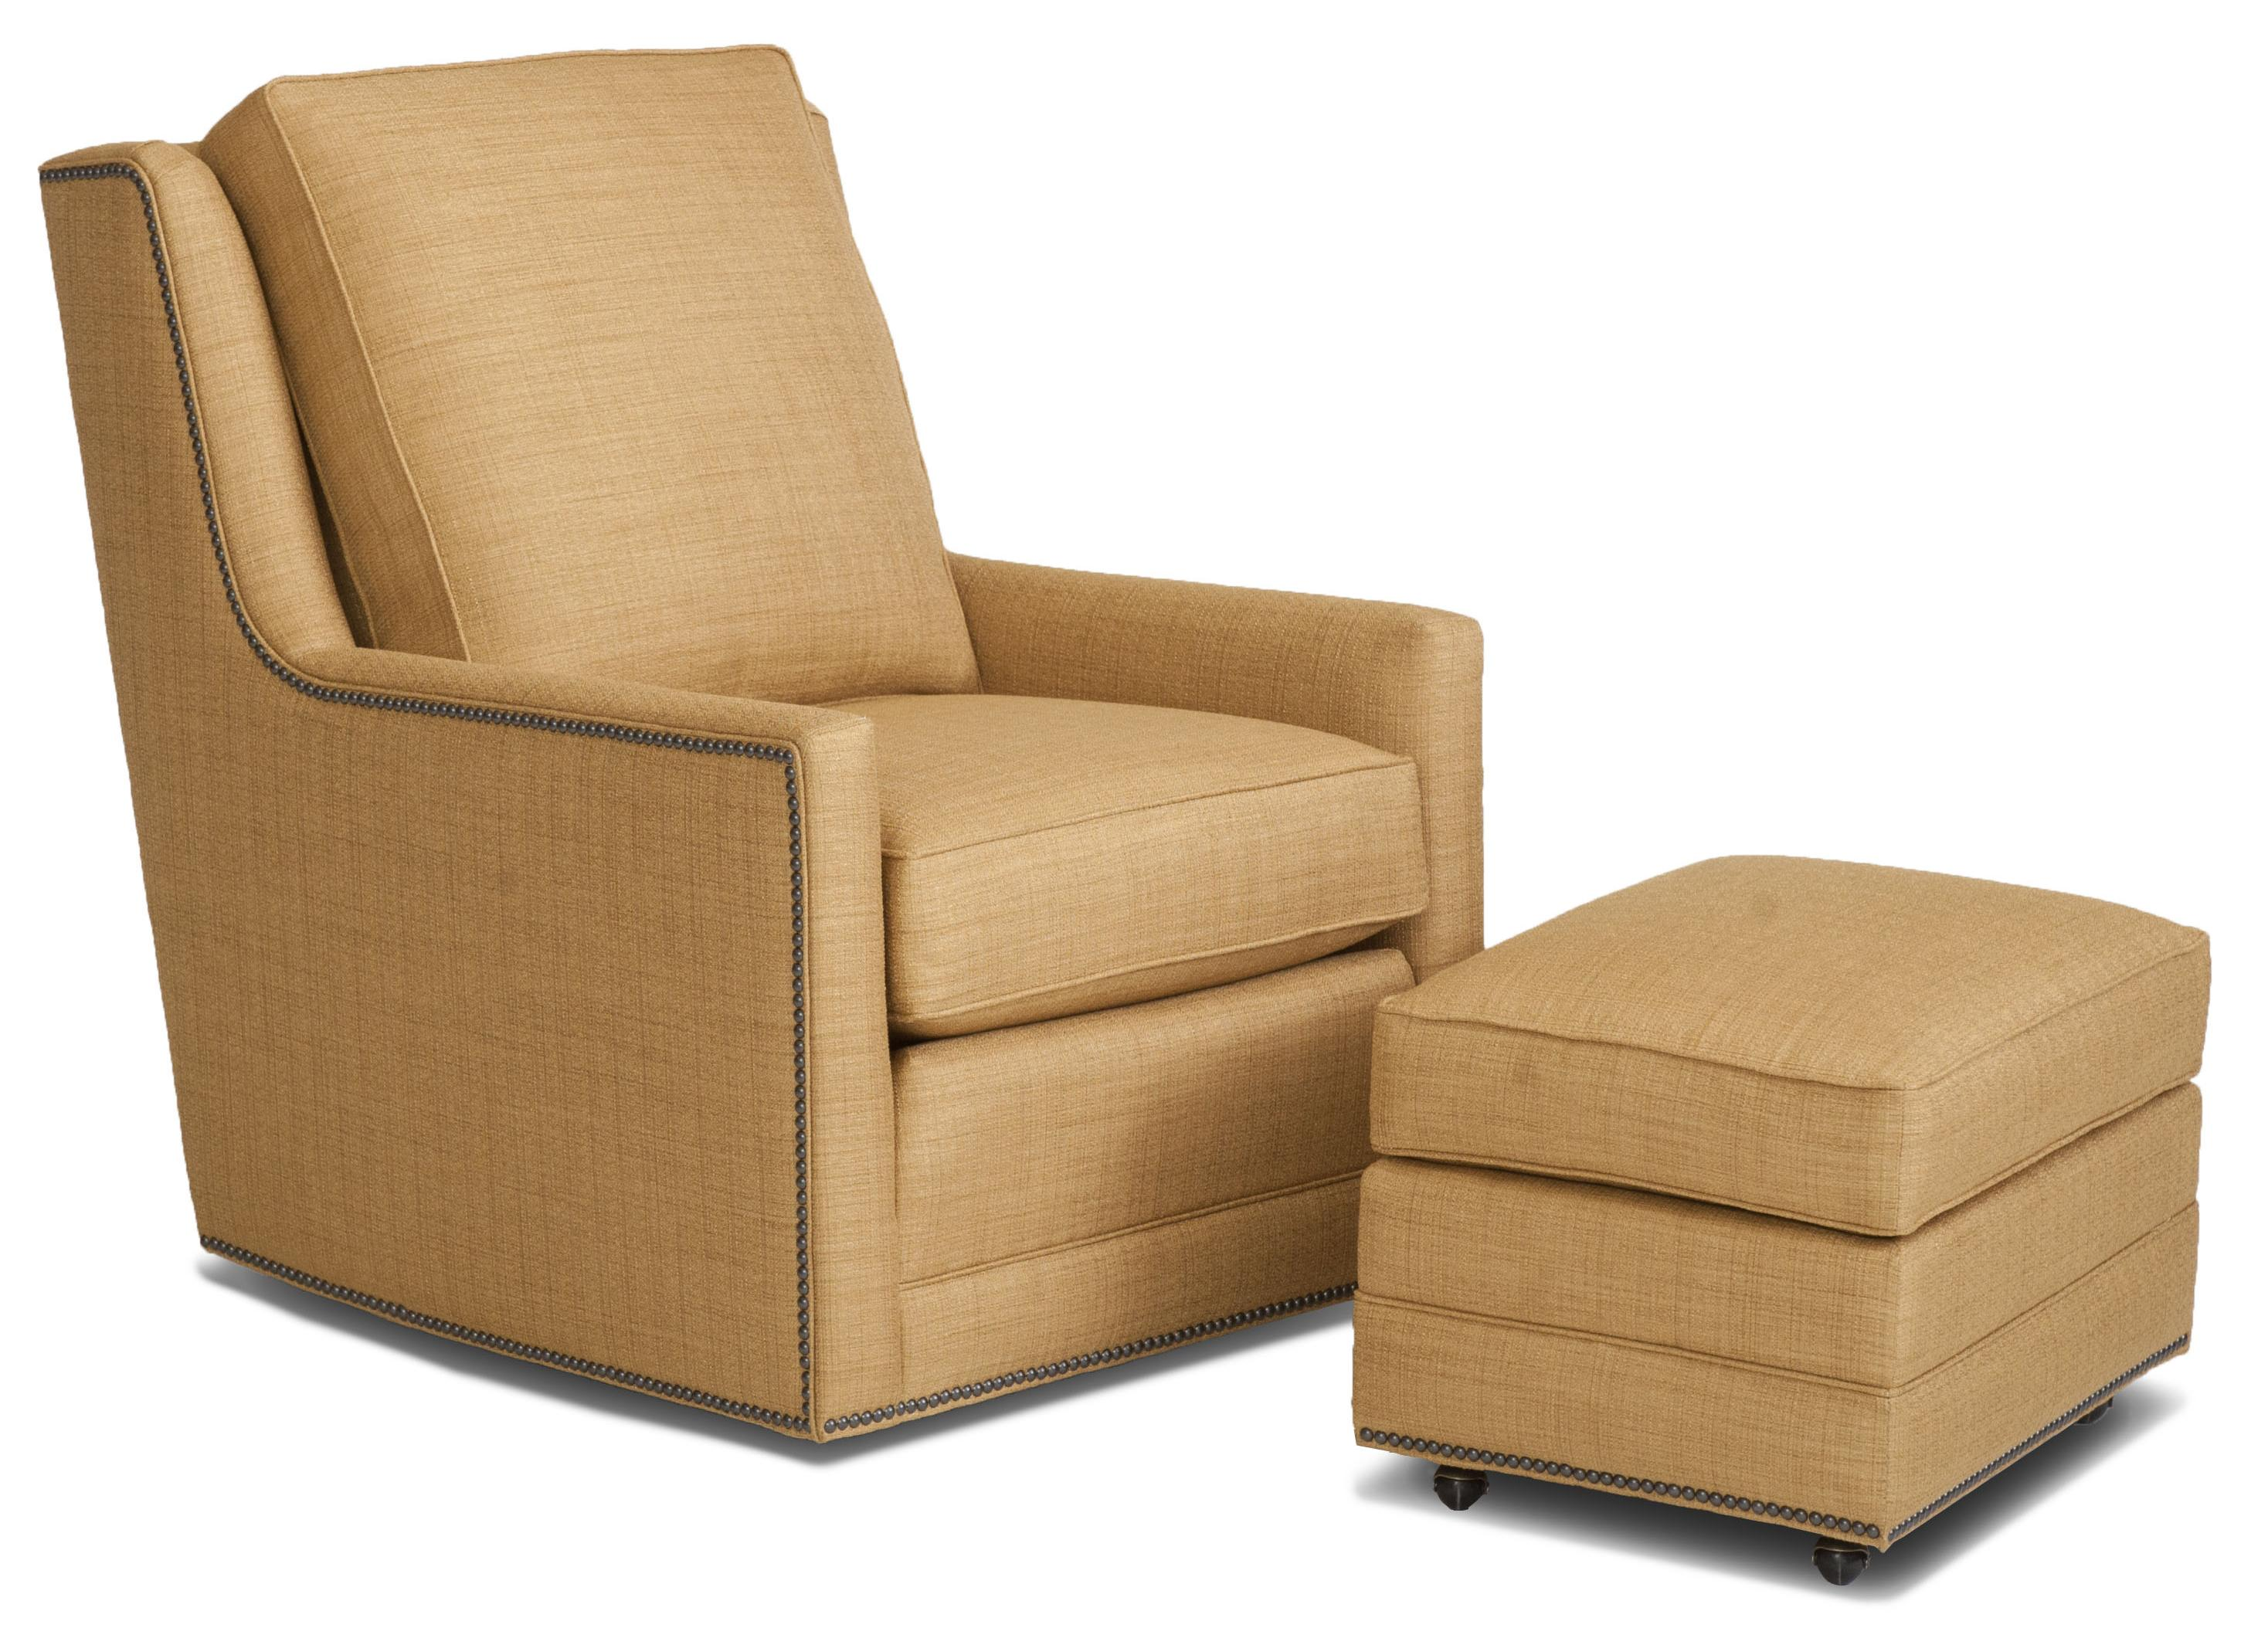 Fancy Swivel Chairs Smith Brothers Accent Chairs And Ottomans Sb Transitional